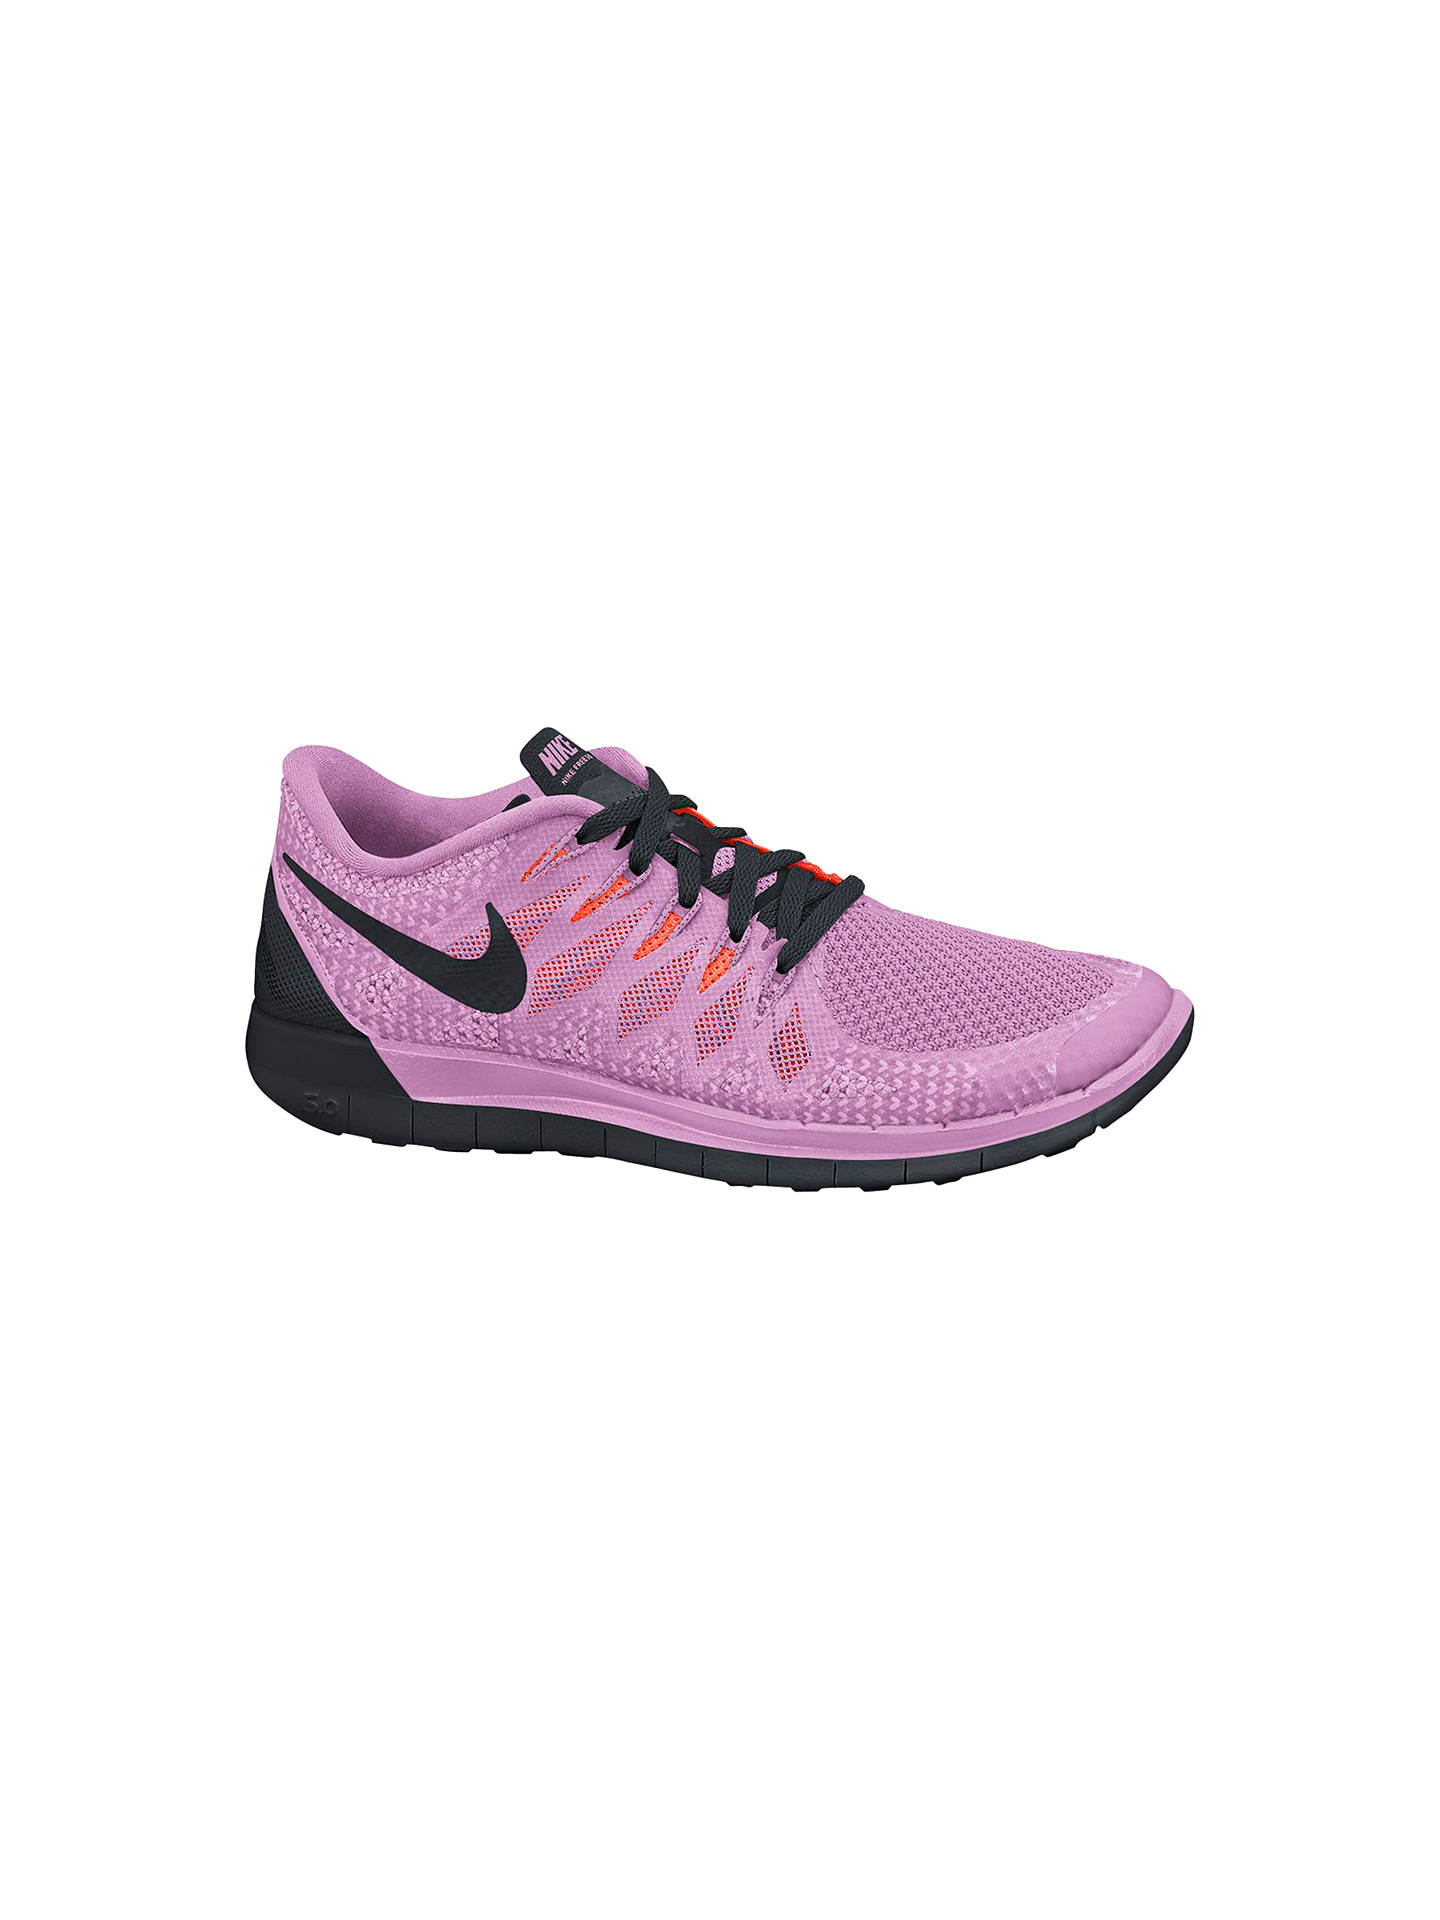 best service 3d8e3 f28ed Buy Nike Free 5.0 Women s Running Shoes, Light Magenta Black, 6 Online at  ...